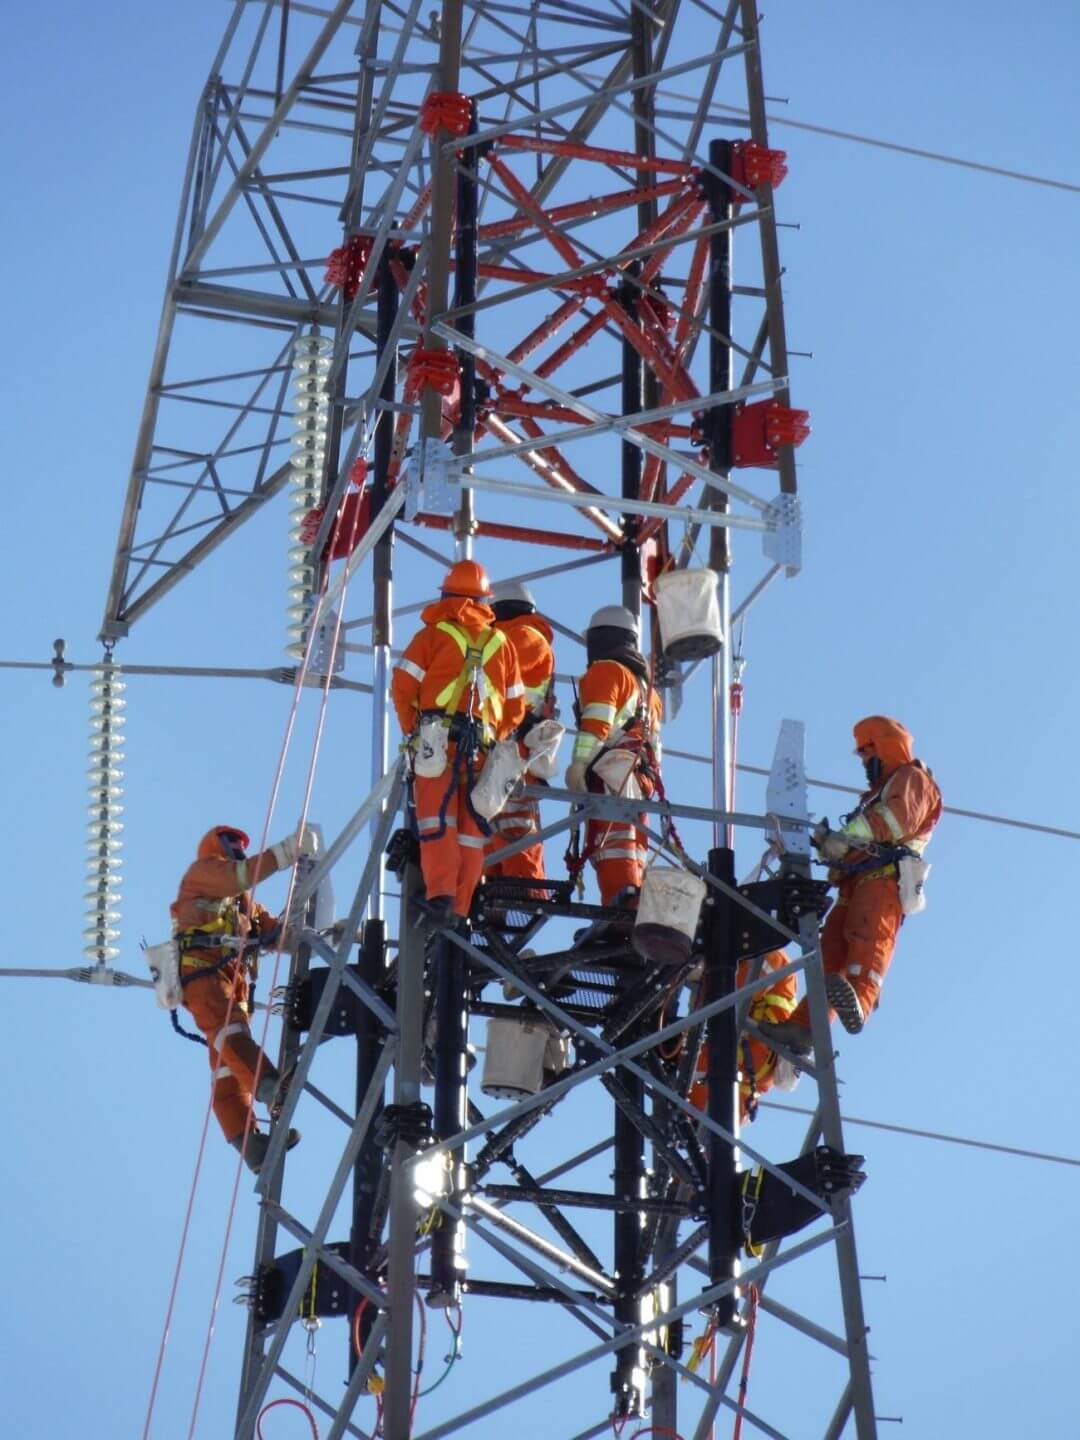 Workers on transmission tower